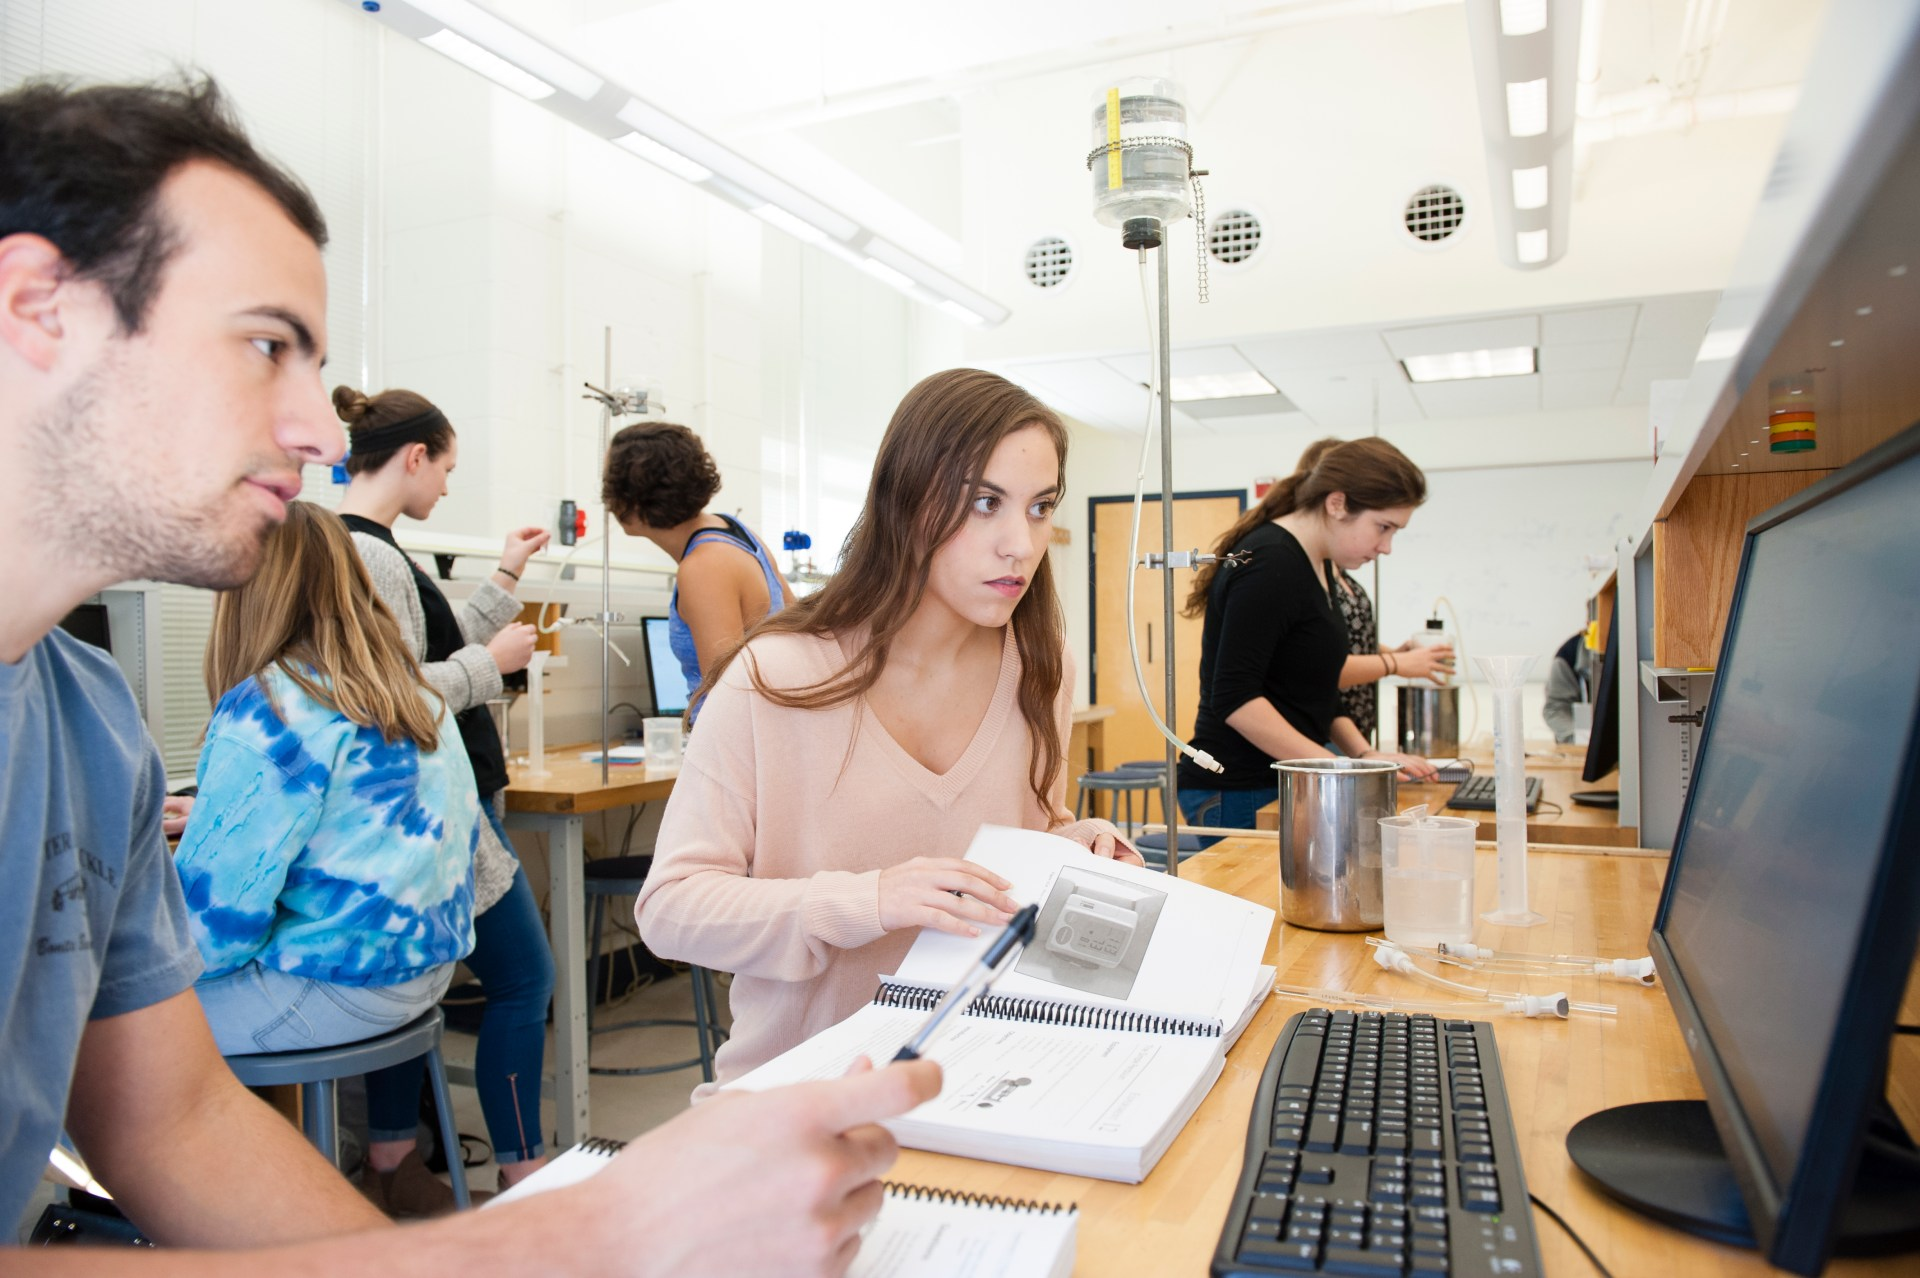 A male and female student look at their computer screen while conducting a physics experiment in lab. Other students are in the background conducting the same experiment.